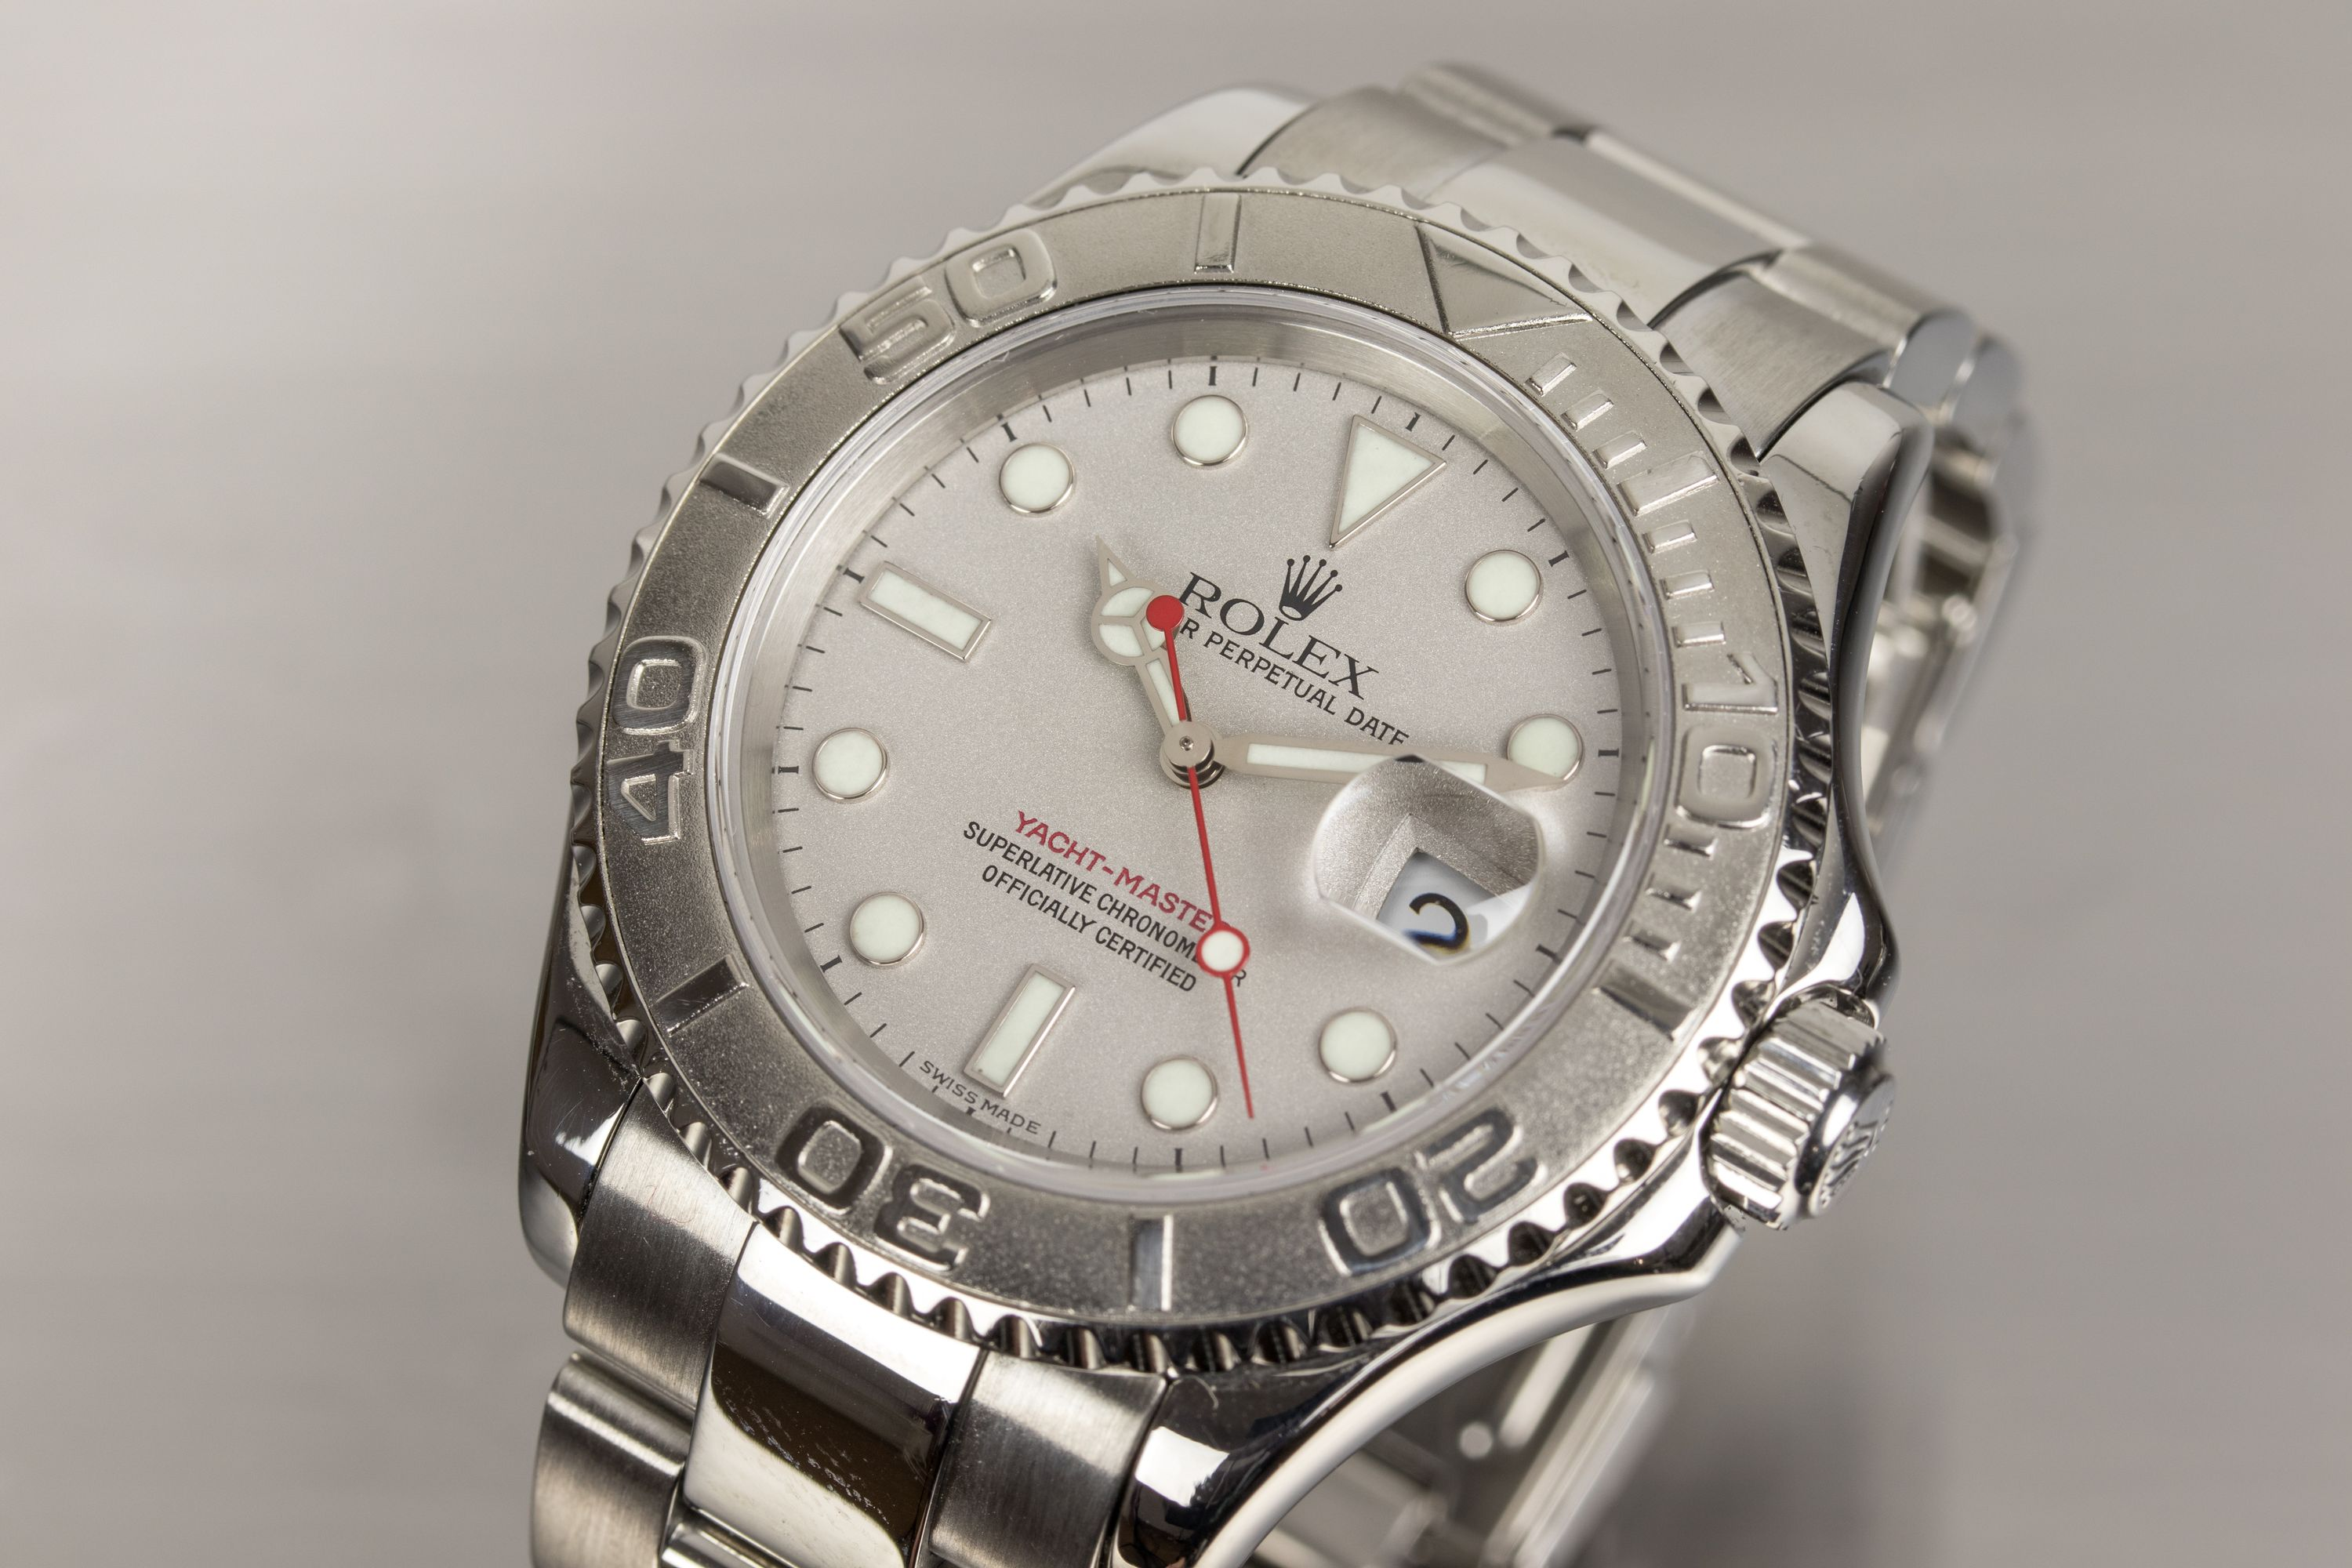 Rolex Yatch-Master Luxury Investment